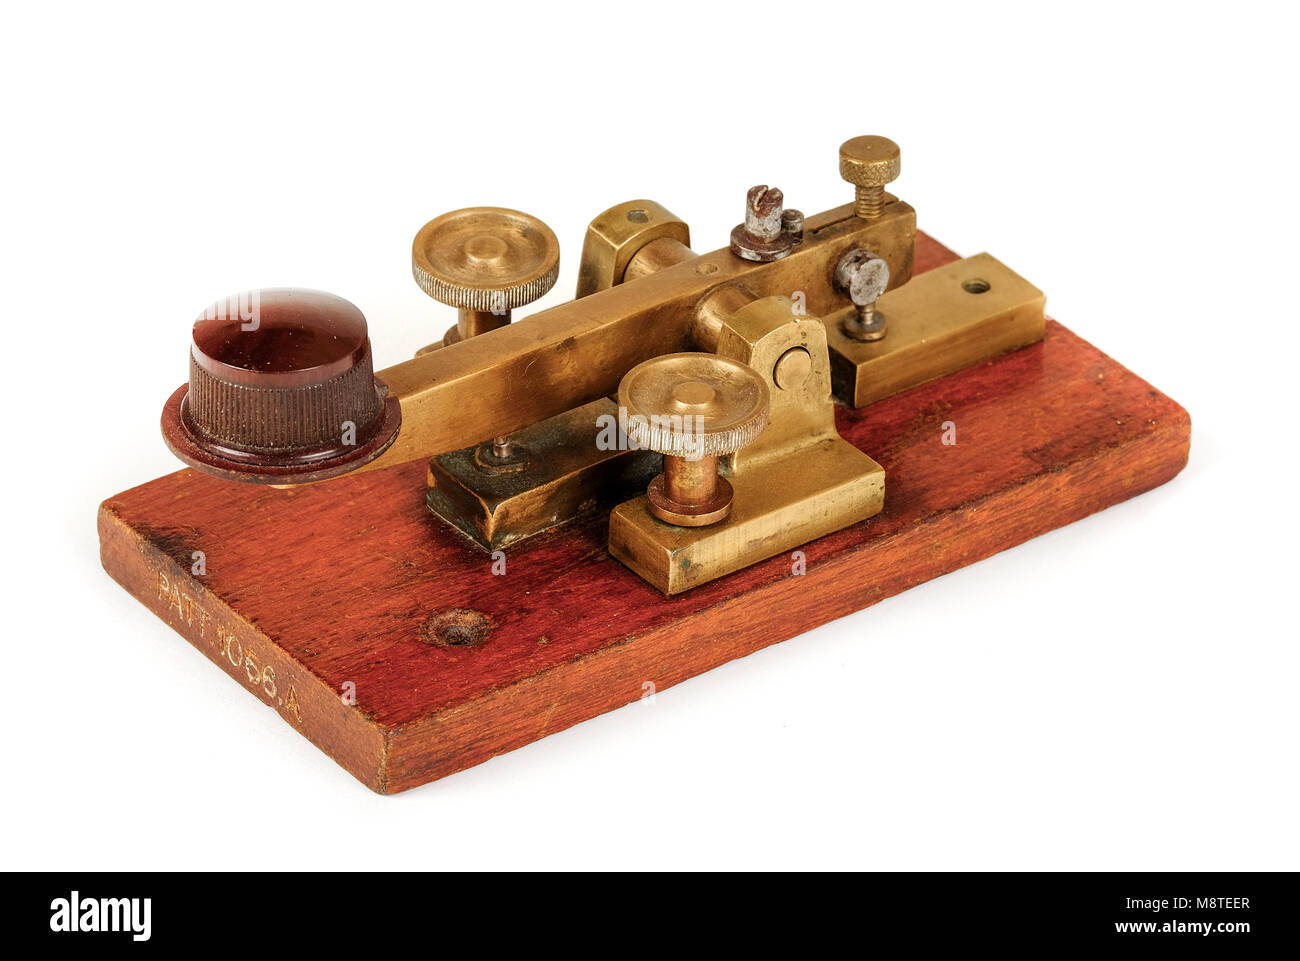 Early antique GPO (British Post Office) telegraph key for sending telegram messages using Morse Code, Patent No - Stock Image